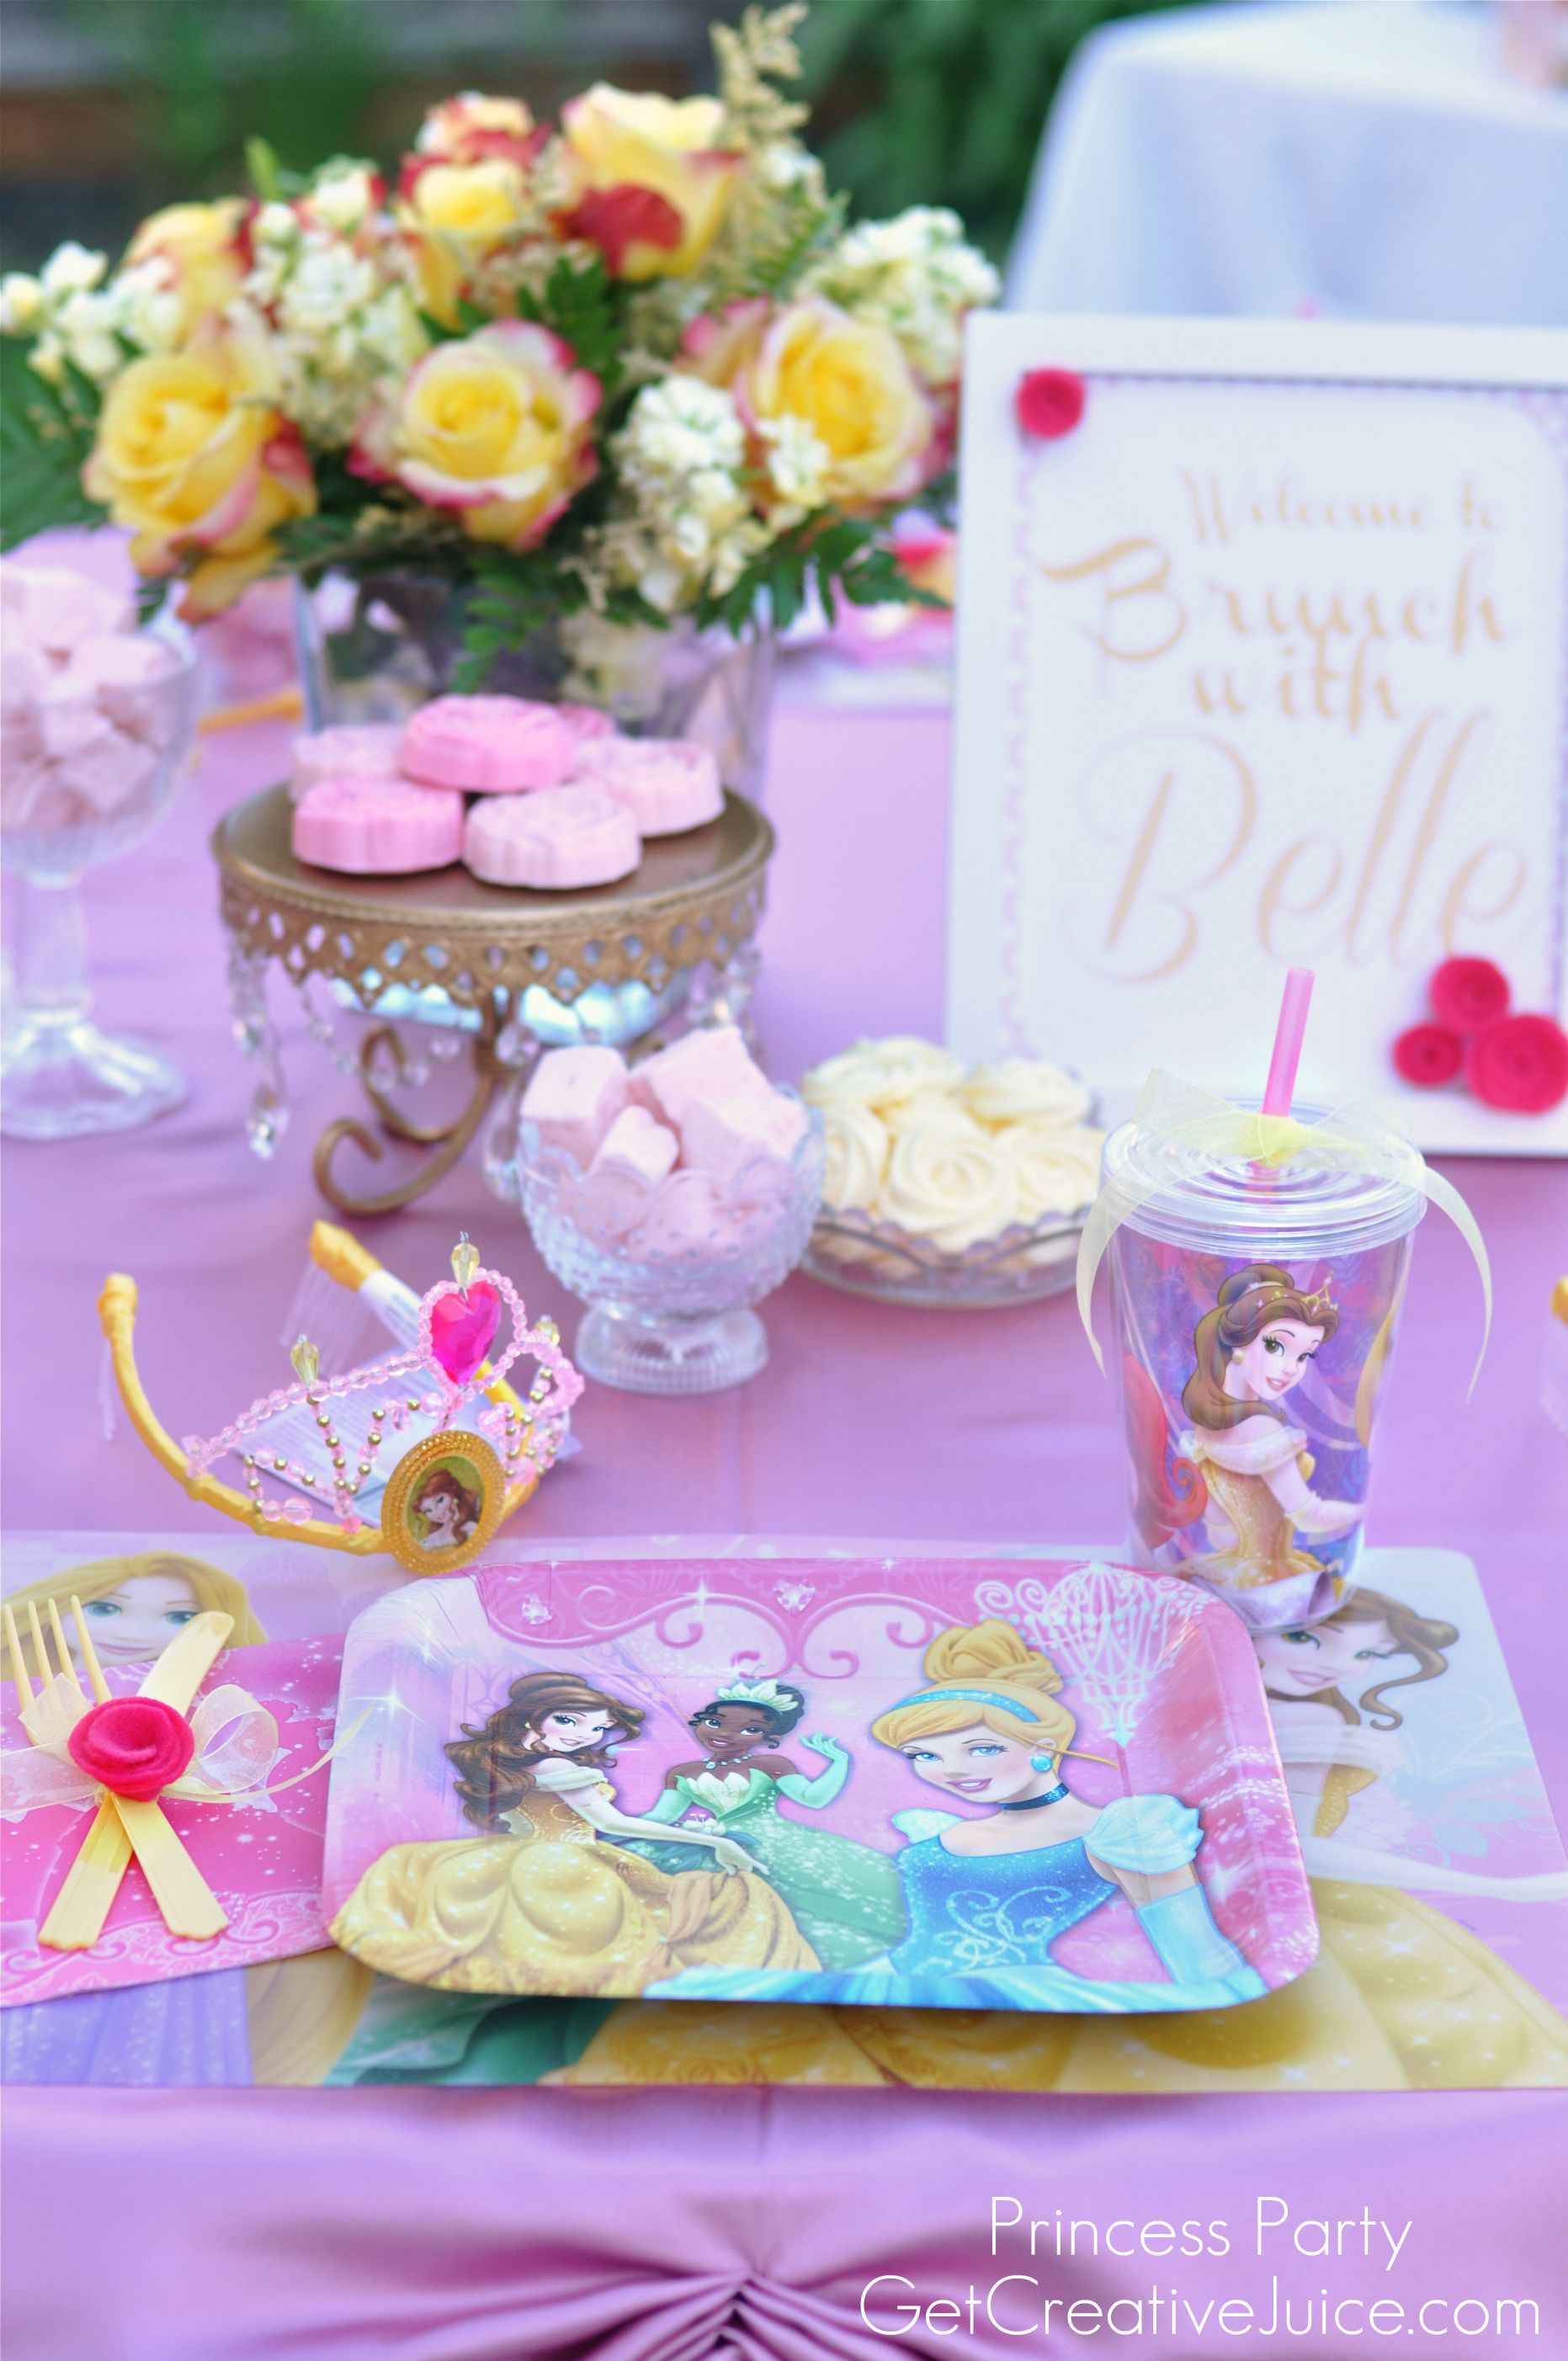 Princess Party Table setting ideas and decorations | Future Birthday ...